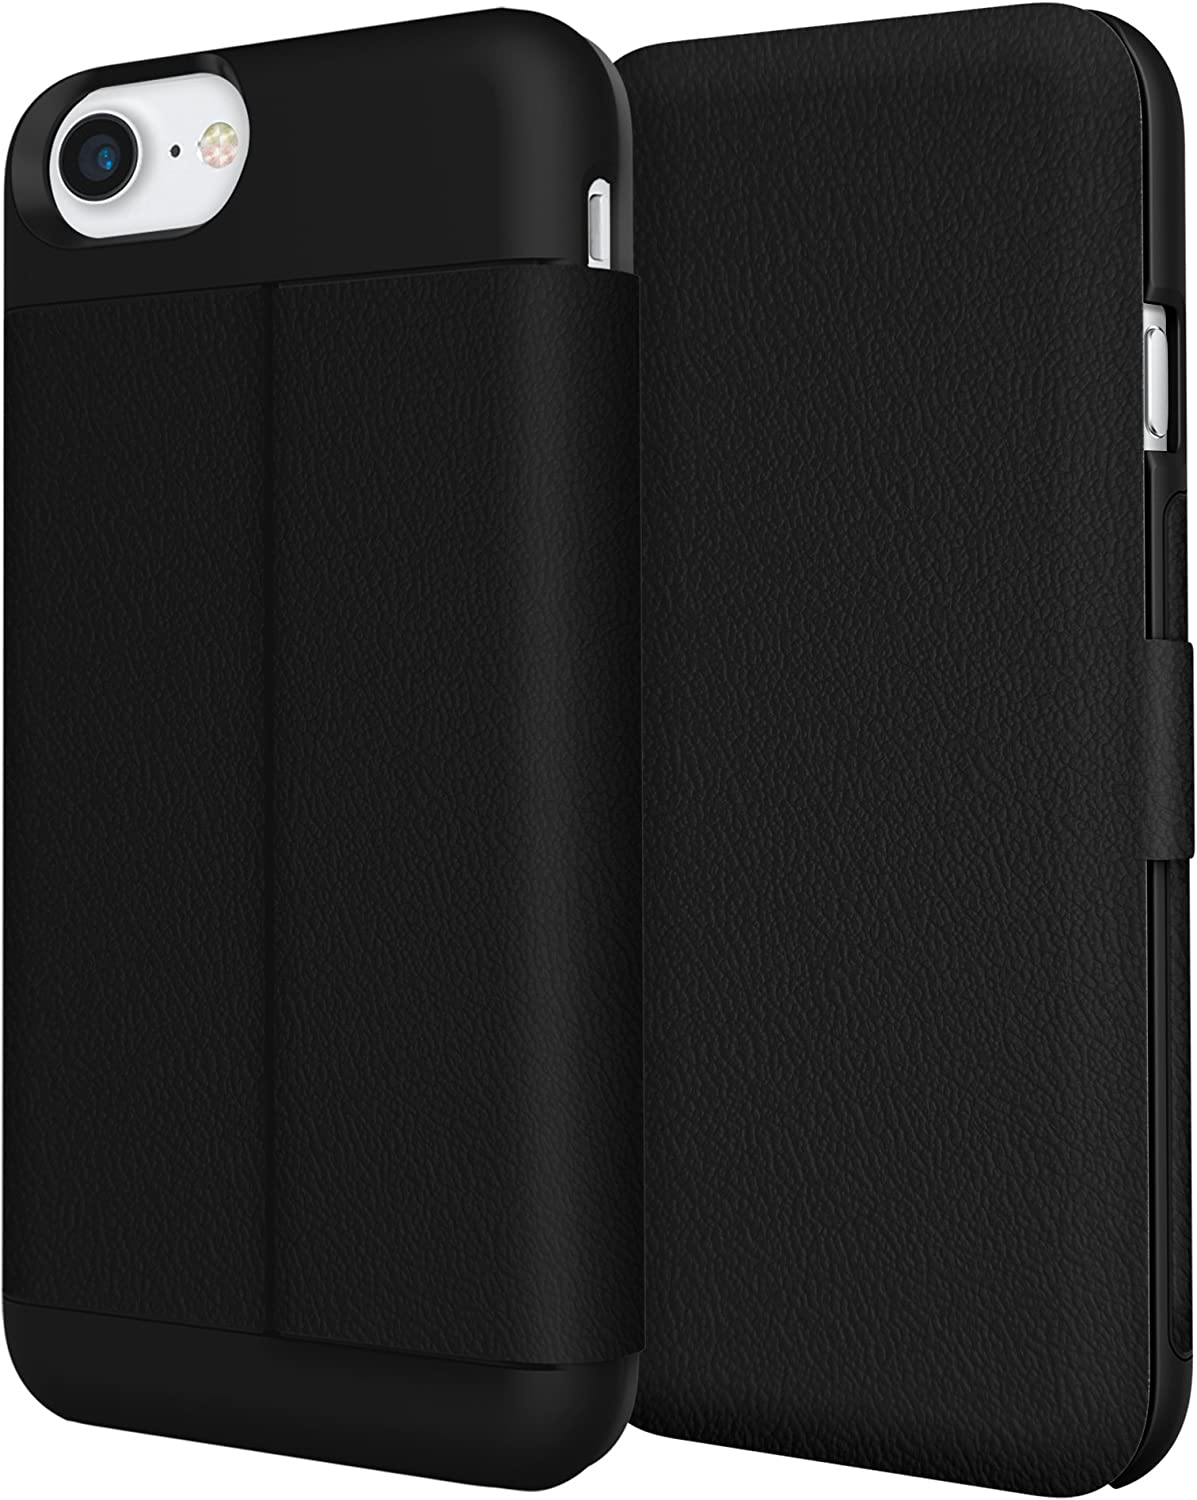 Amazon Com Iphone 7 Case Incipio Wallet Folio Case Credit Card Case Vegan Leather Cover Fits Apple Iphone 7 Black